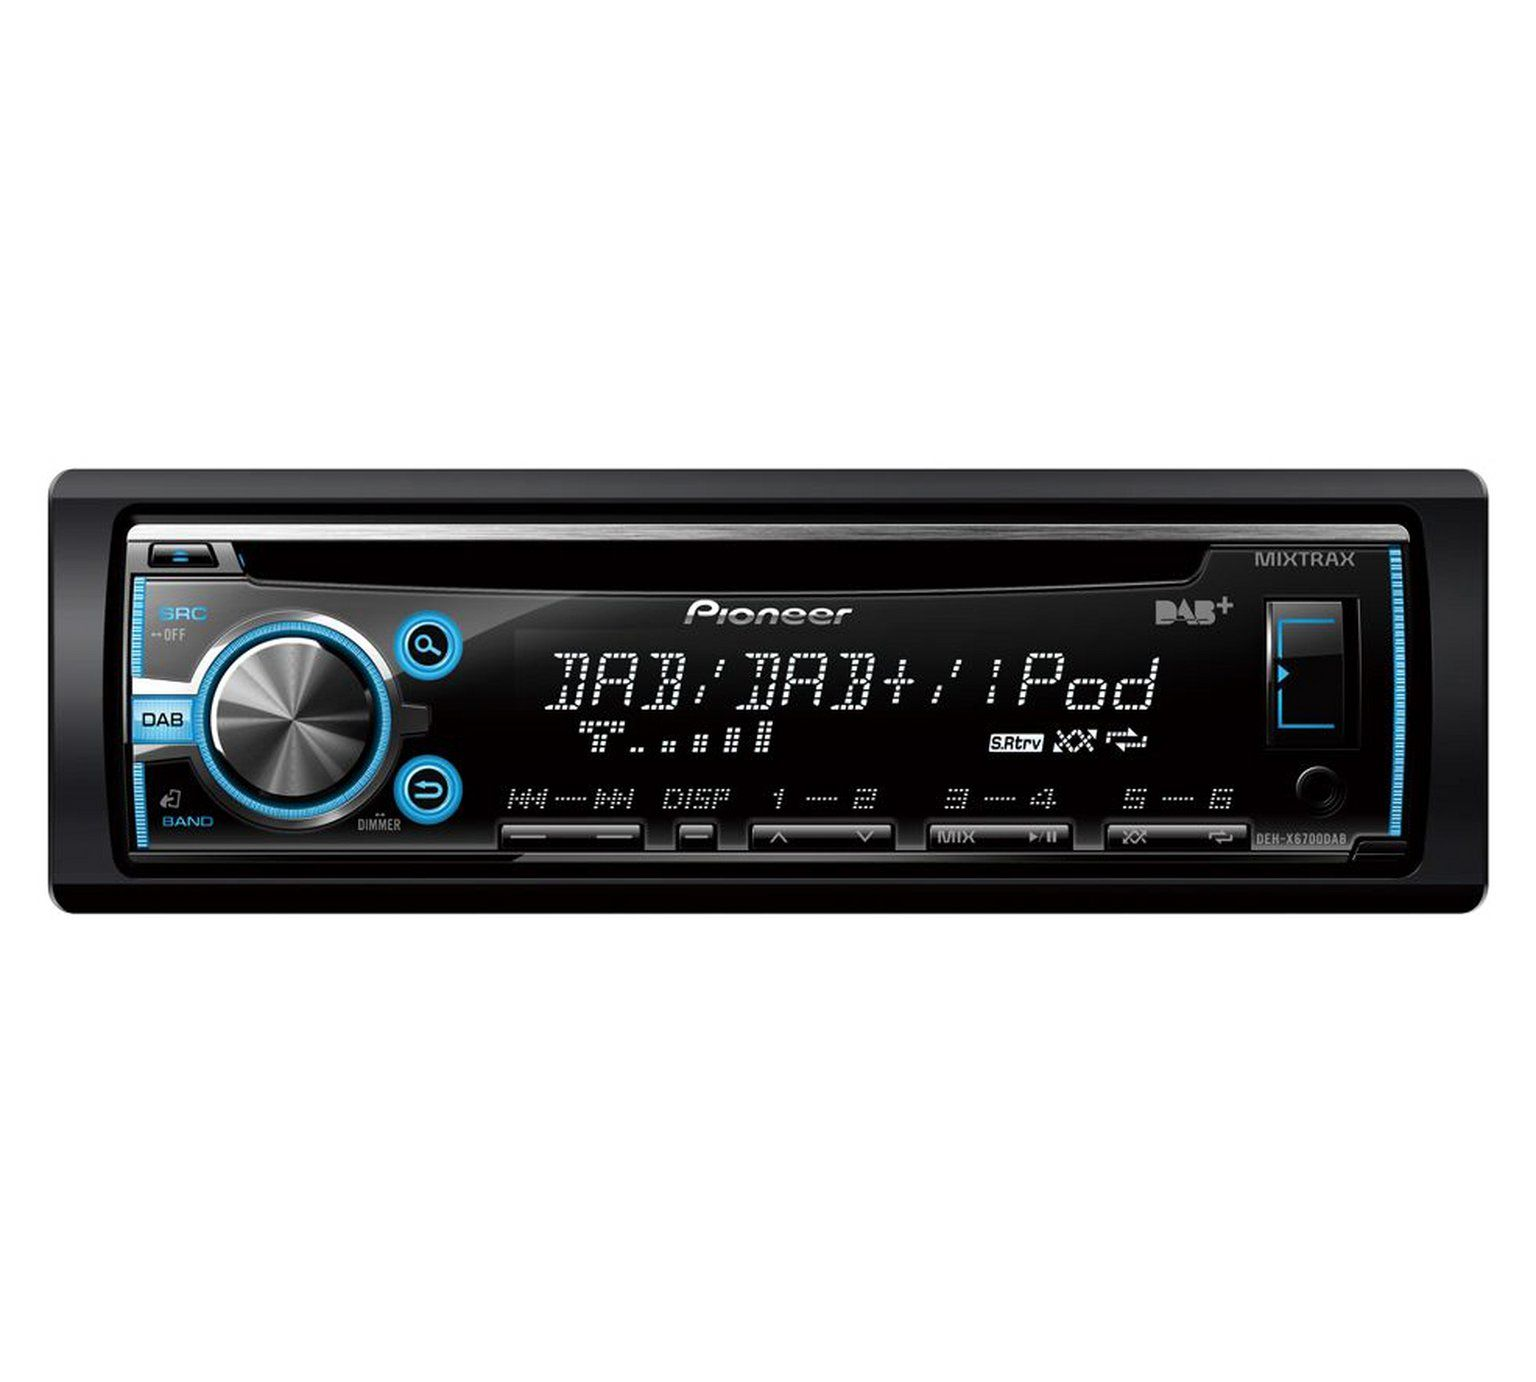 Must fit my car  Any DAB/ FM/CD / Car radio PLUS Fitting